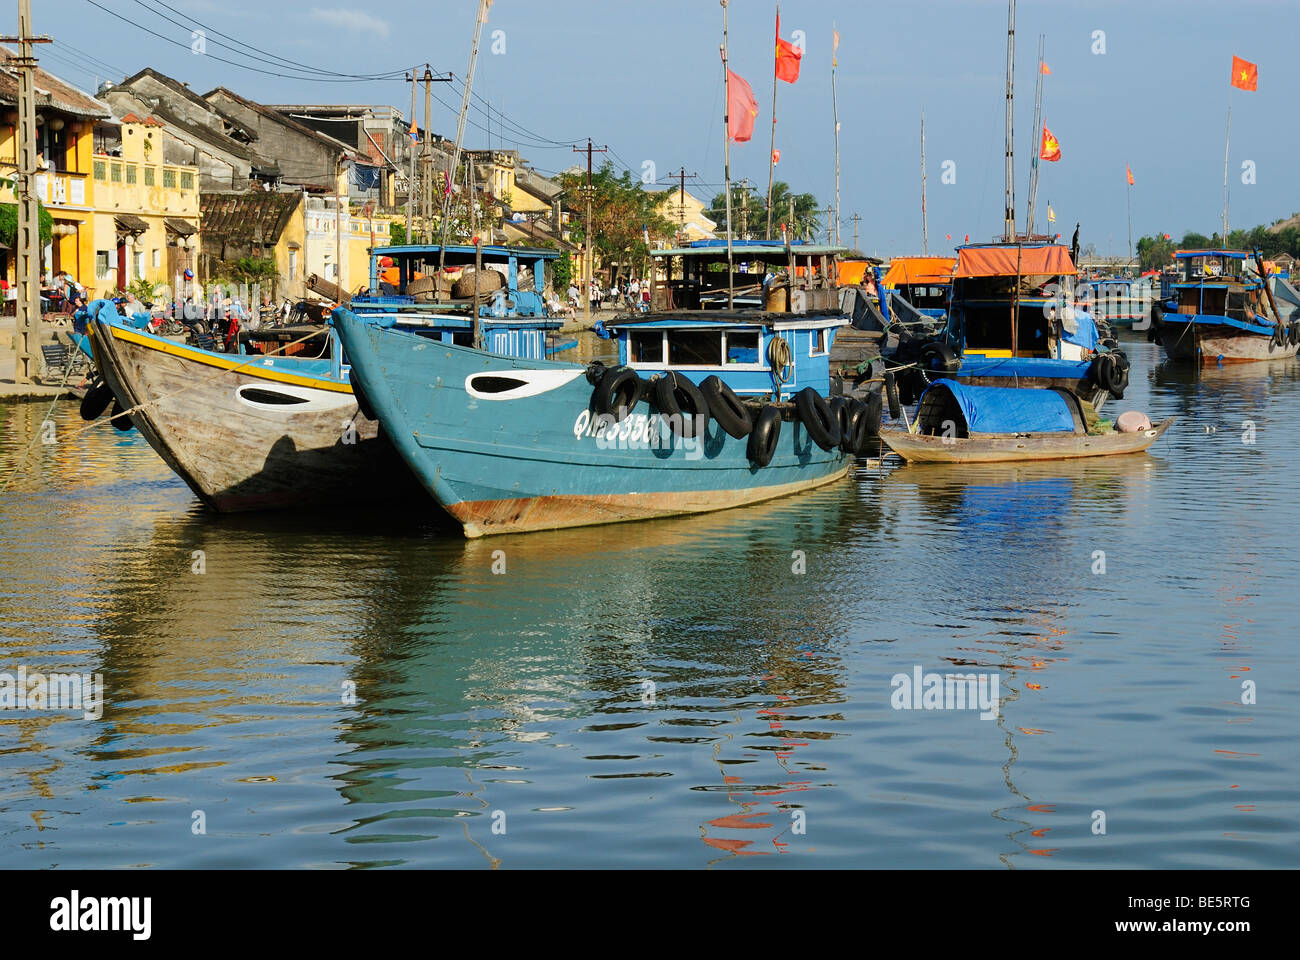 Fishing boats in the harbor of Hoi An, UNESCO World Heritage Site, Vietnam, Asia Stock Photo